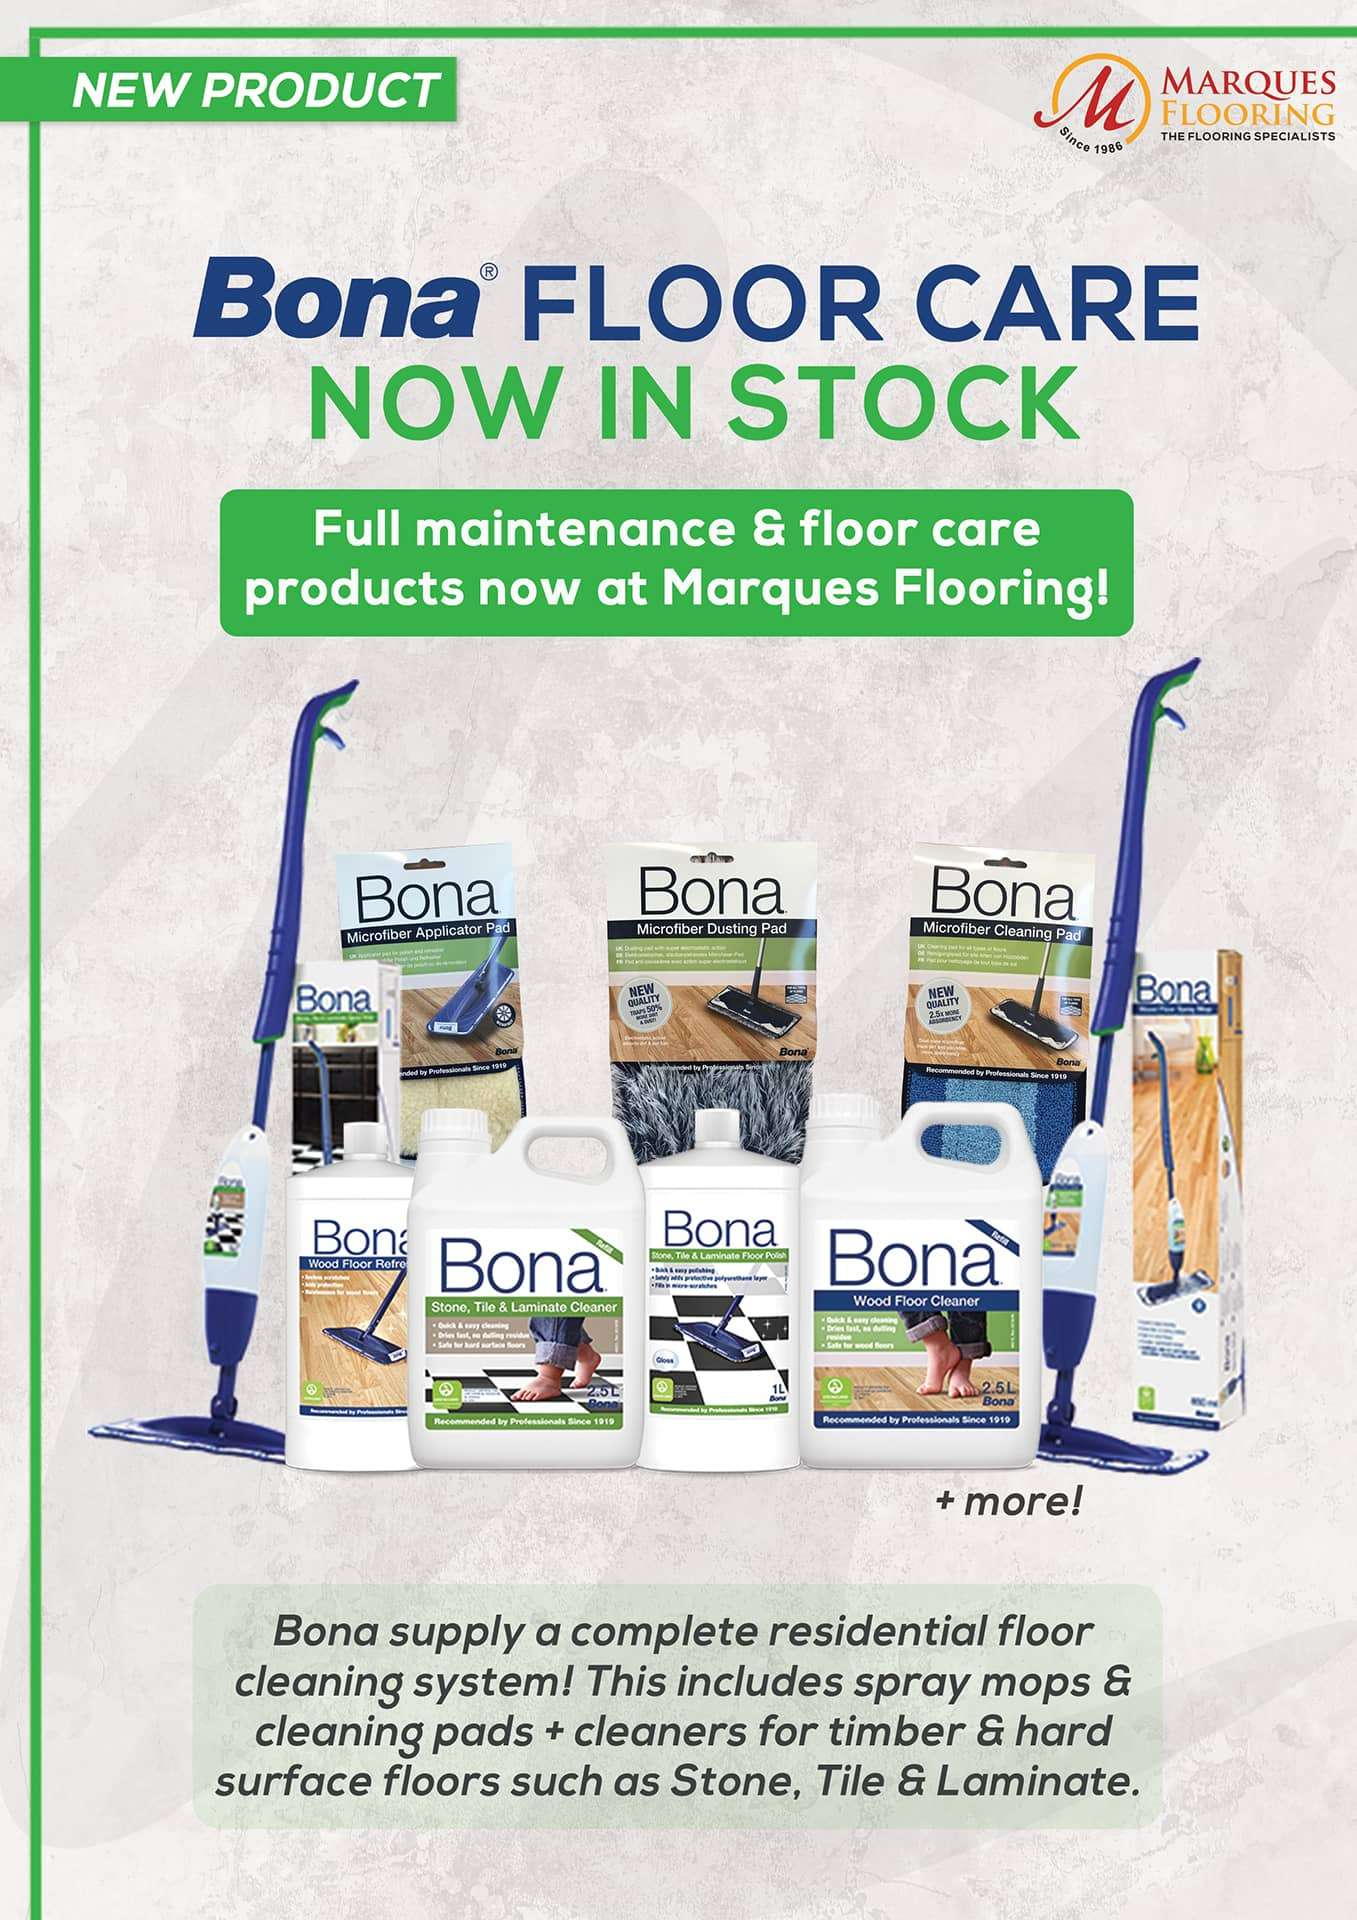 bonafloorcare-newproducts-october-website